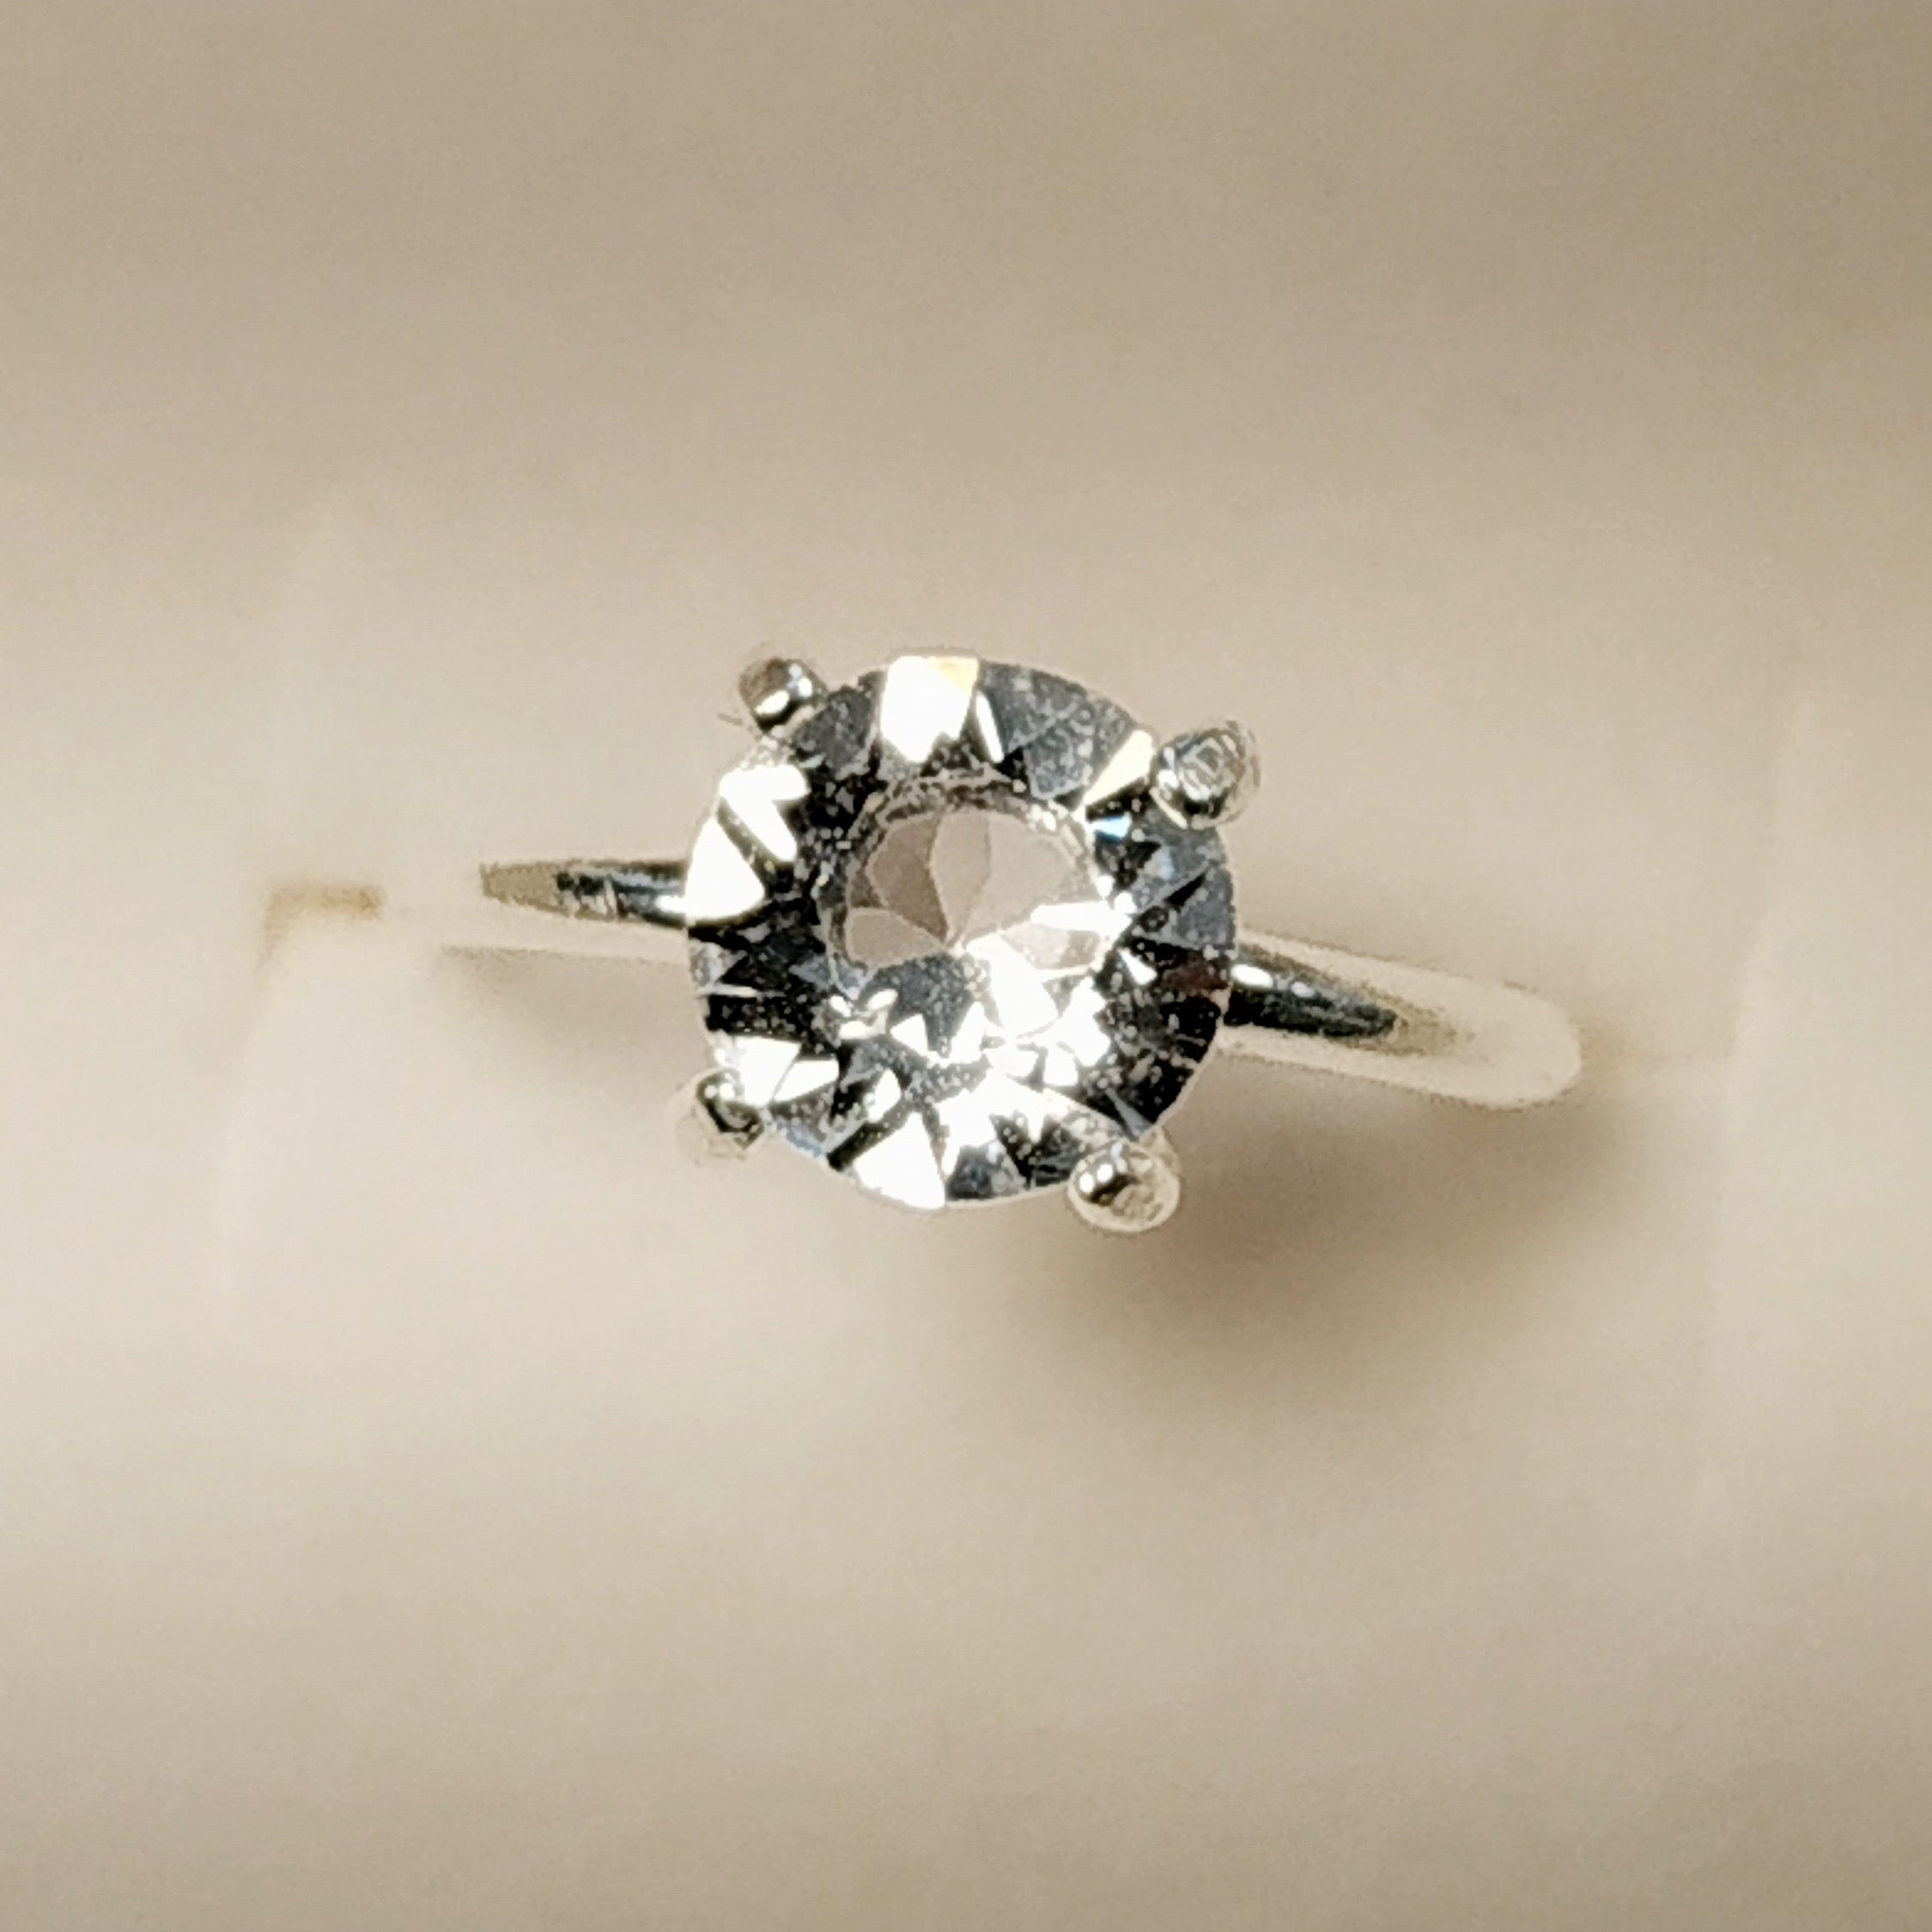 https://josefacreations.com/products/bague-solitaire-argent-cristal-swarovski.jpeg